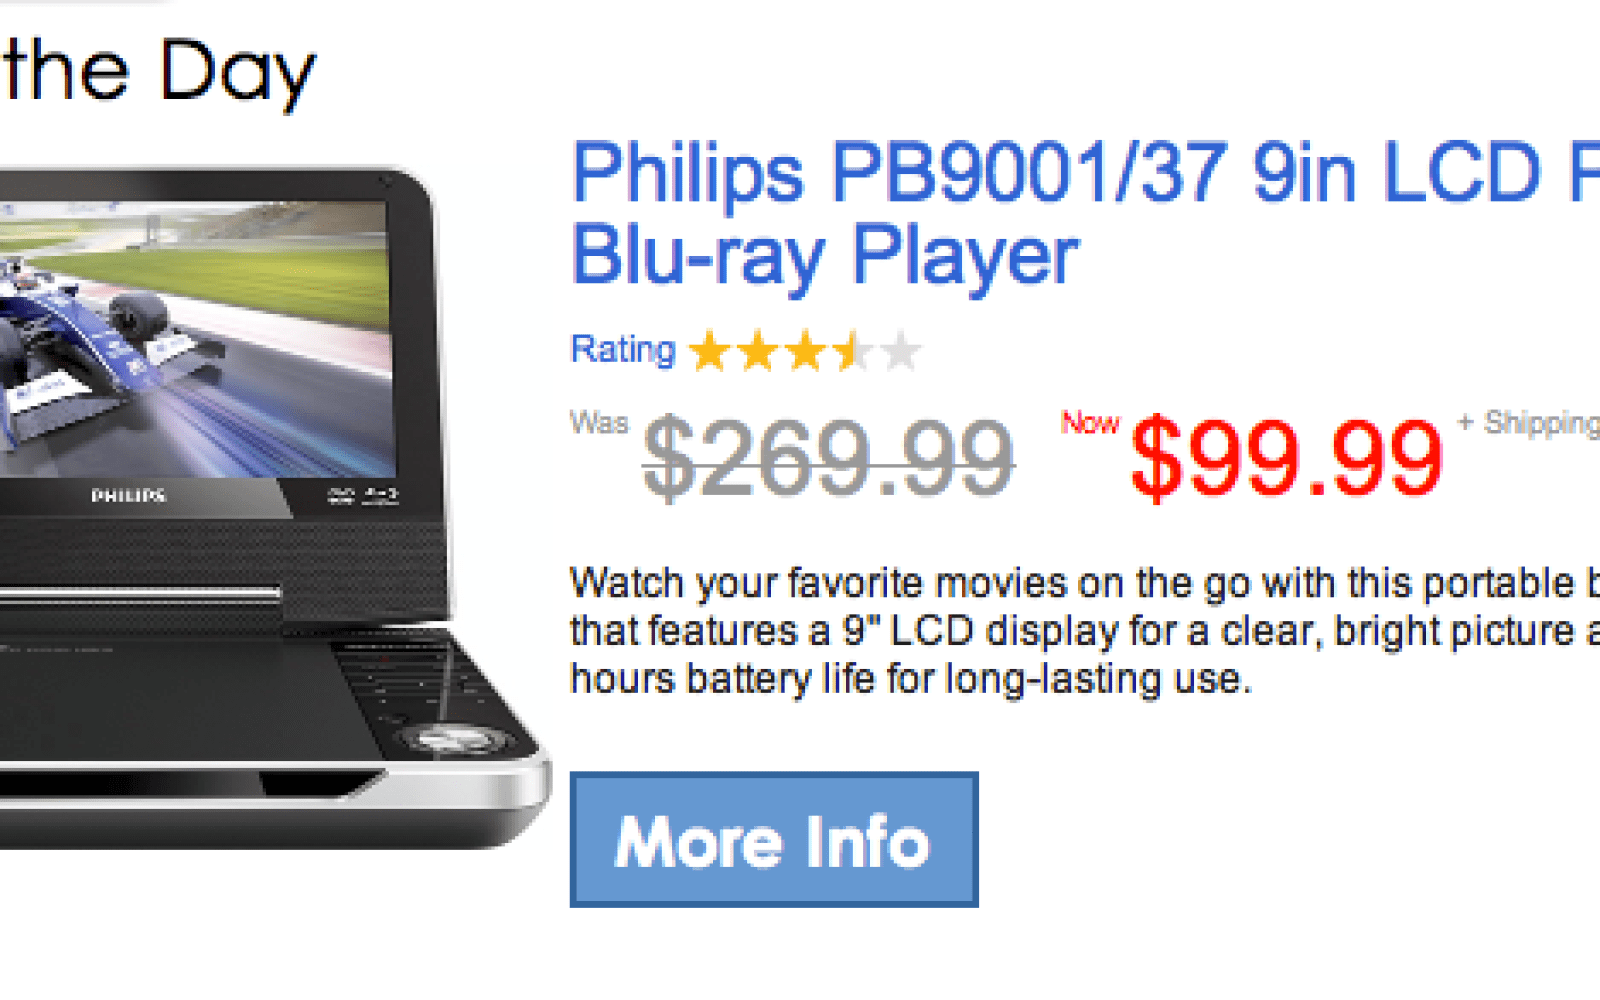 Philips 9in LCD Portable Blu-ray Player $99 - 9to5Toys